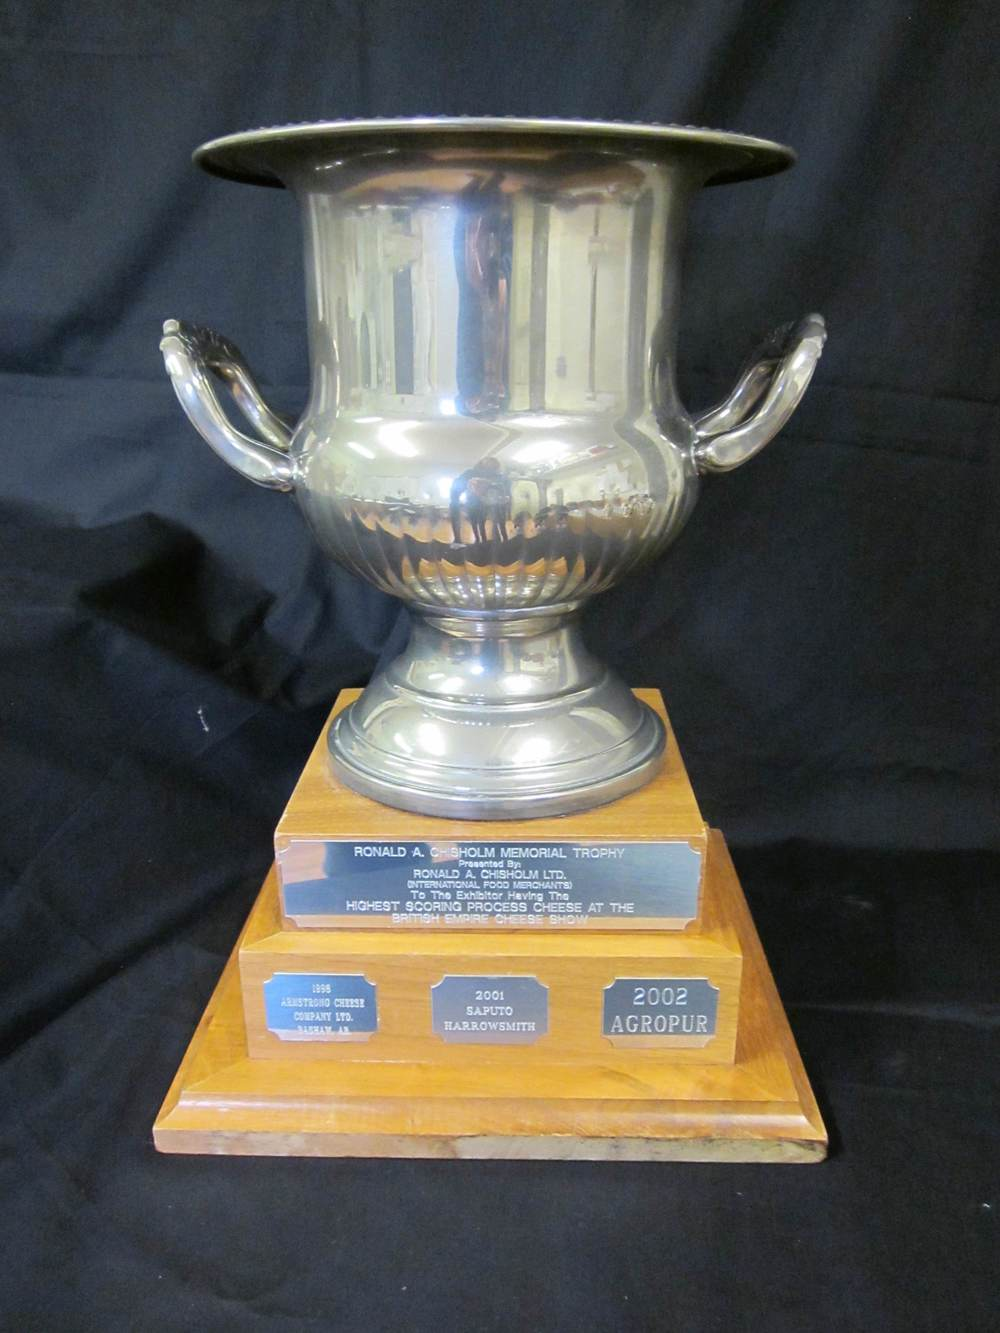 Ronald A. Chisholm Memorial Trophy